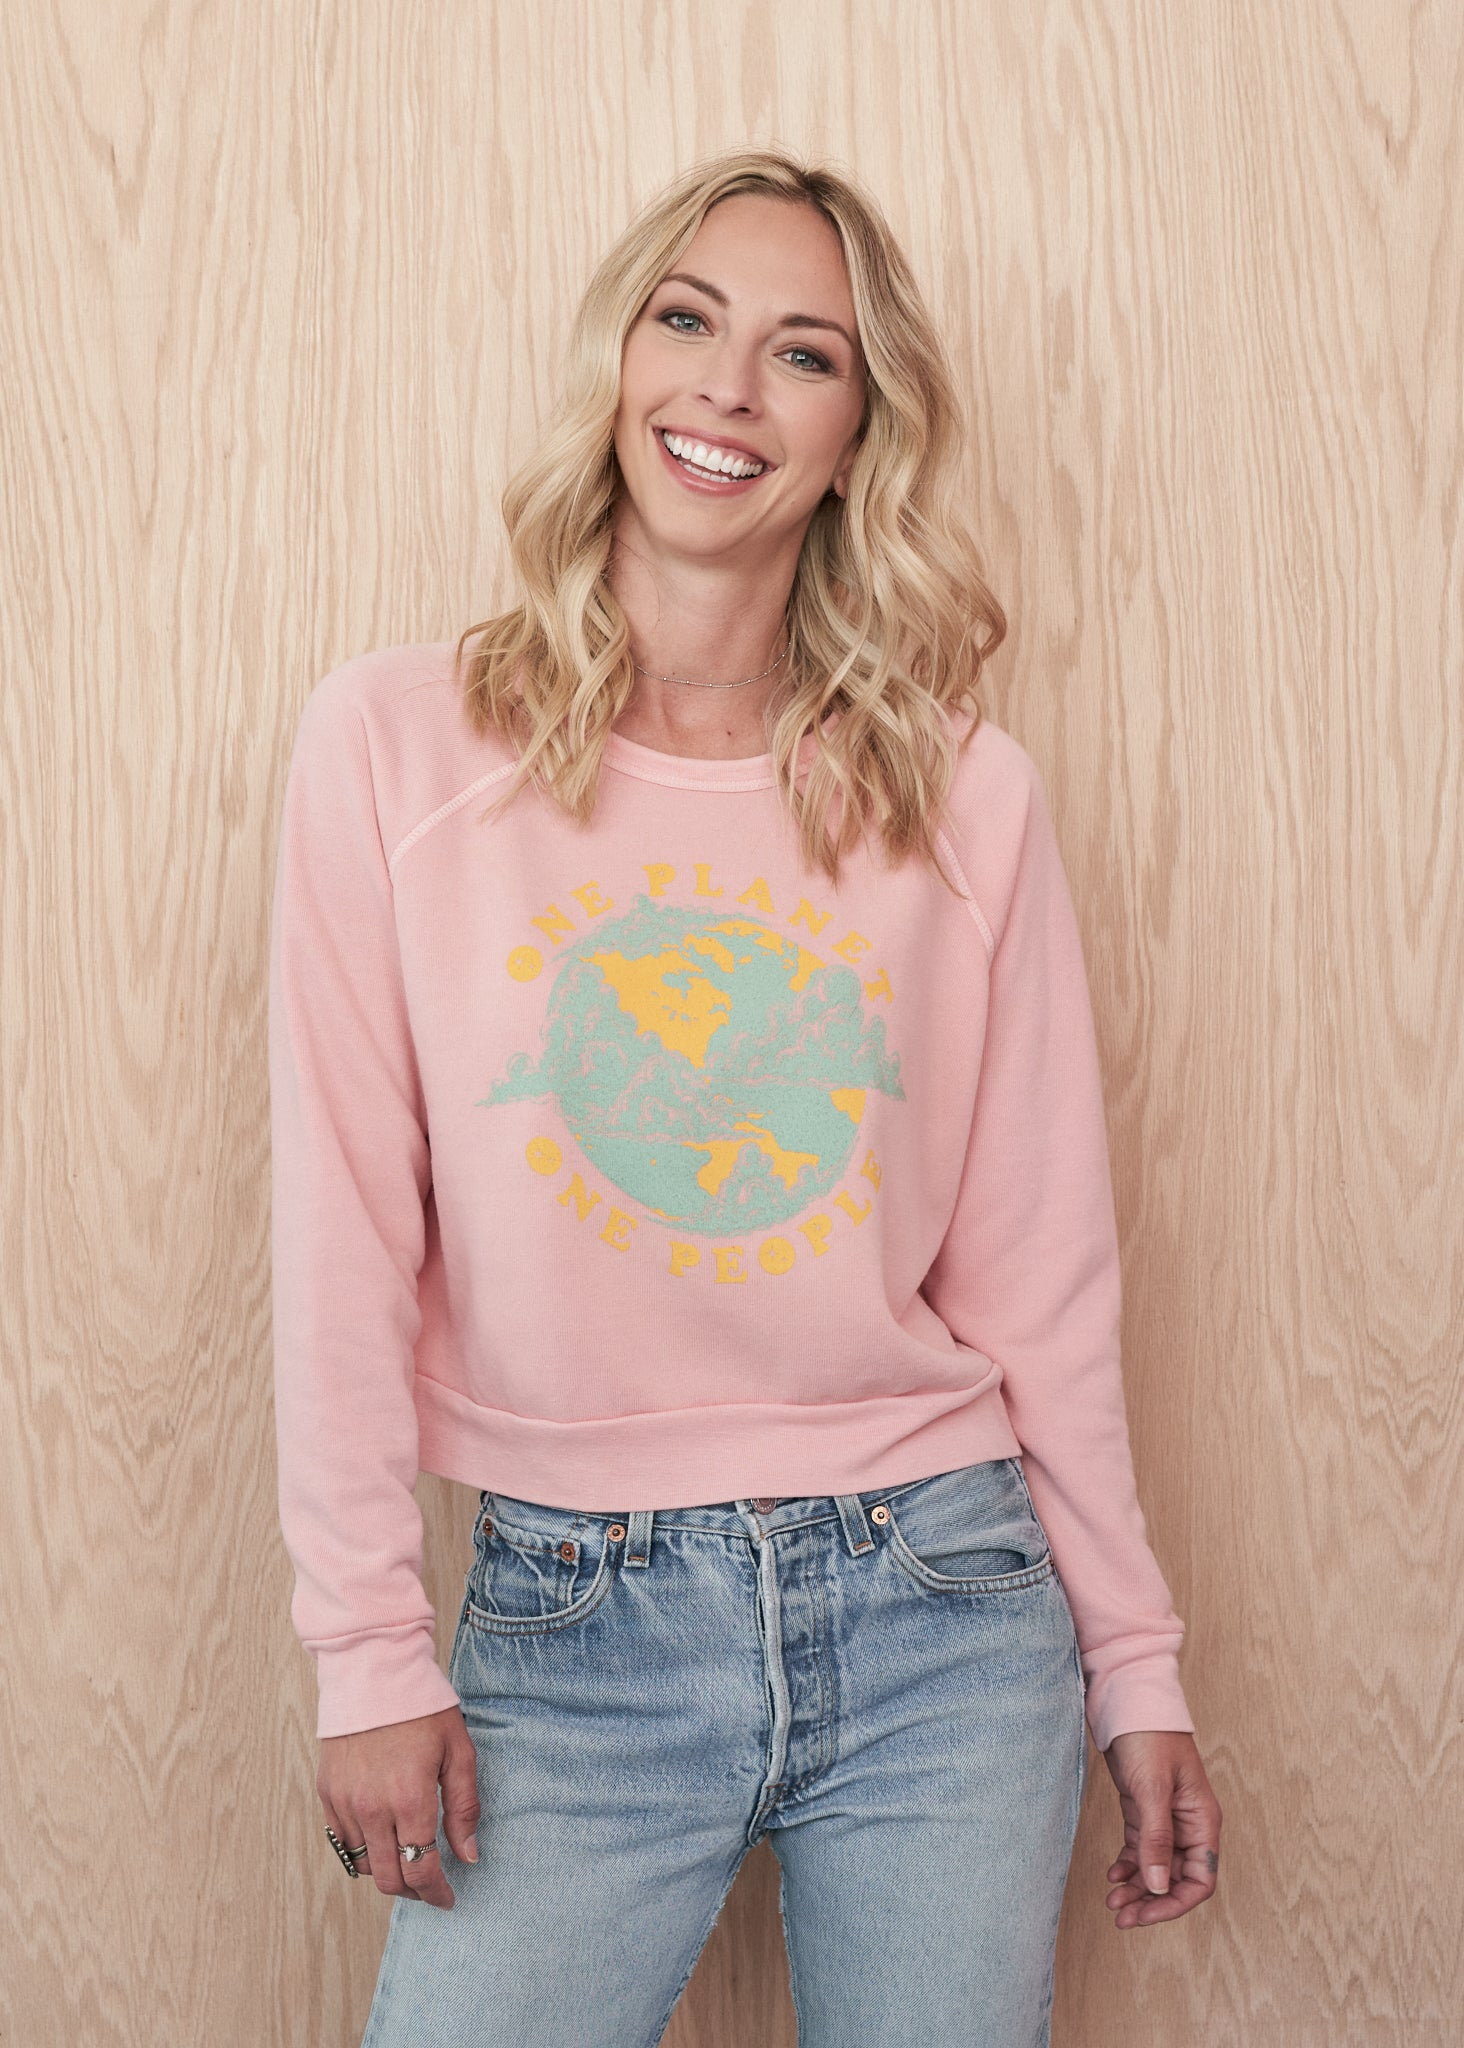 One Planet One People Cropped Sweatshirt - Women's Tee Shirt - Midnight Rider